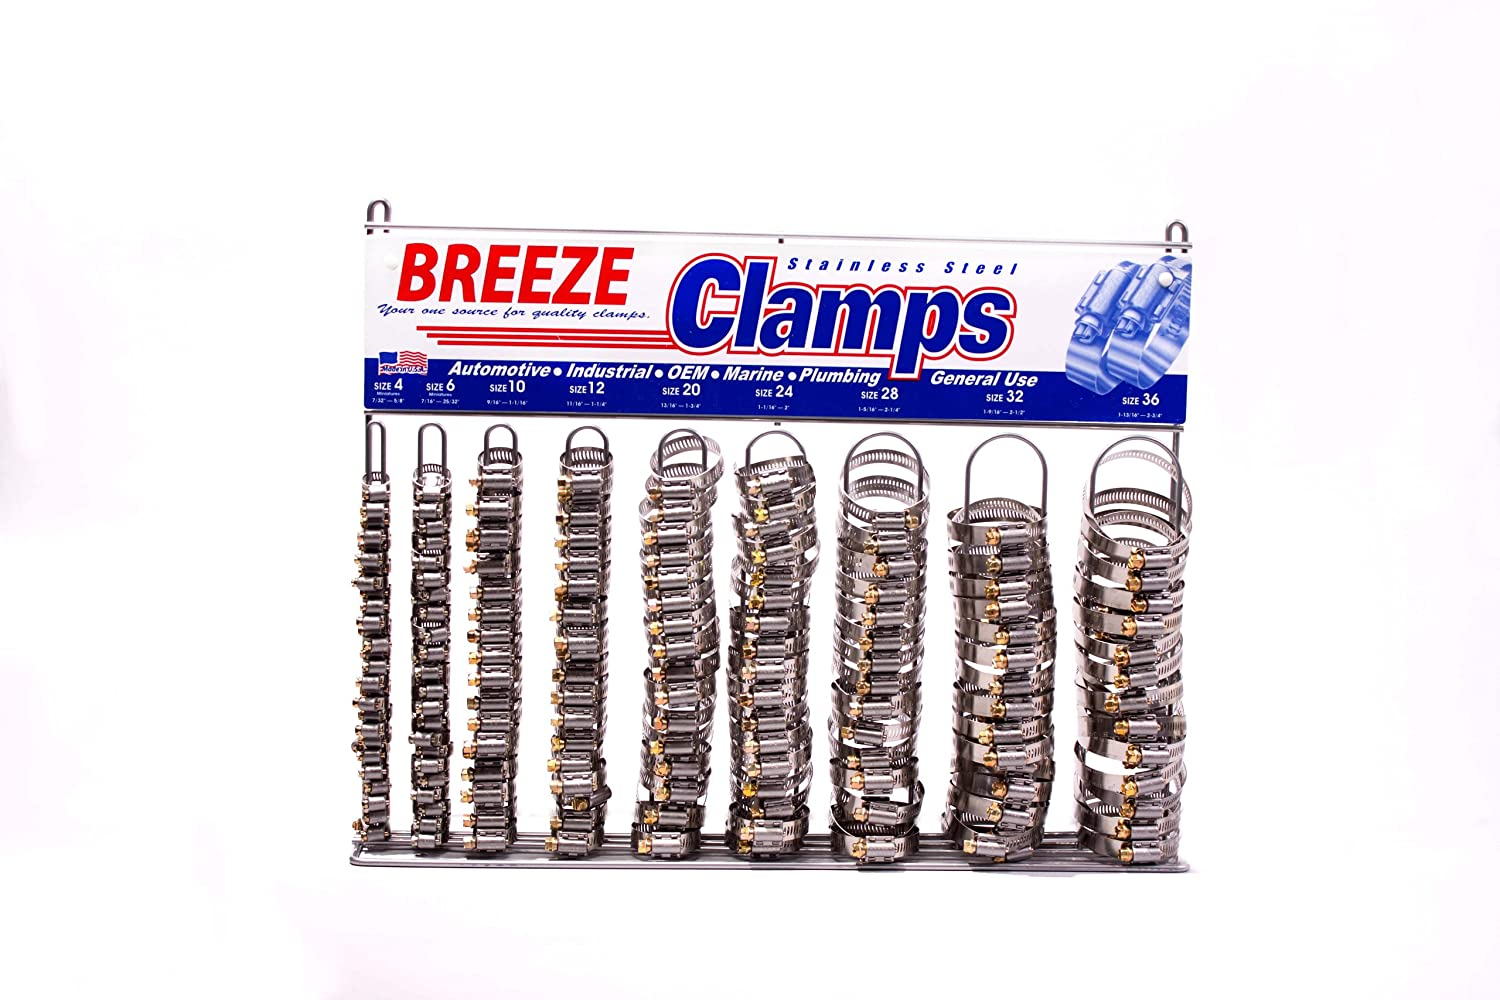 Image of Breeze Hose Clamp Display Assortment, Automotive Assortment, 1 Assortment Contains: 200 Assorted Automotive Clamps, one 6200 Empty Rack Clamps & Sleeving